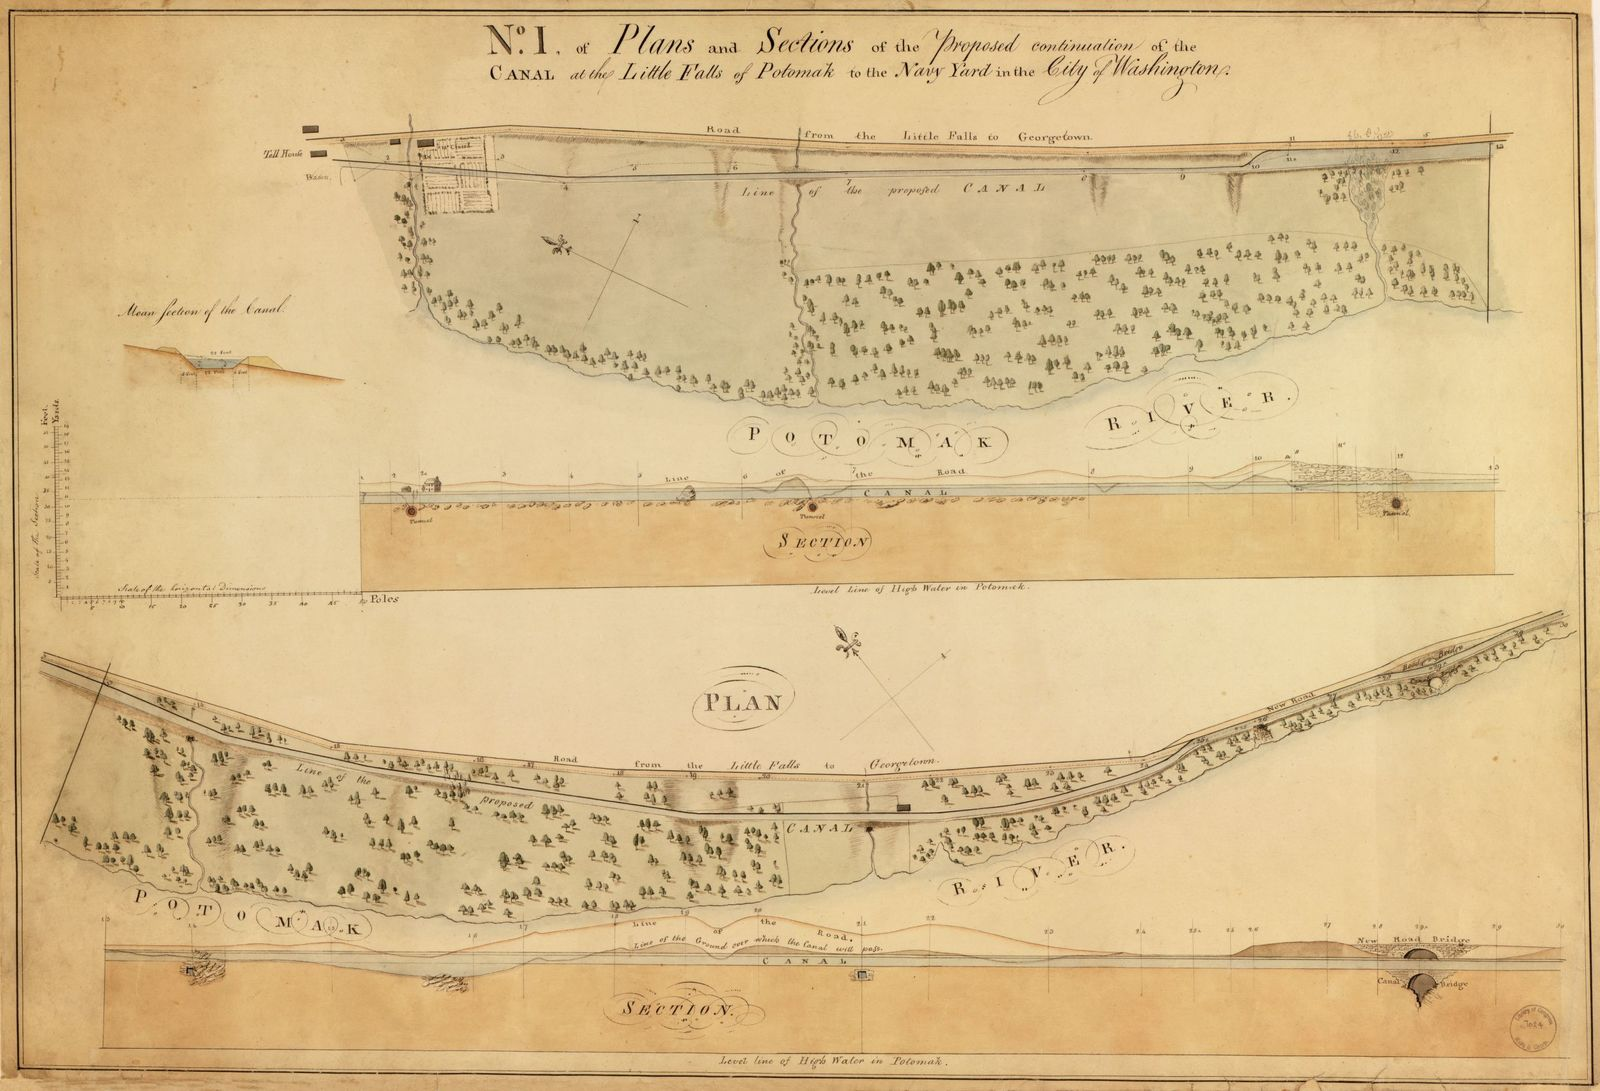 [Plans and sections of the proposed continuation of the Washington Canal from Rock Creek to Little Falls of the Potomac, Washington D.C.] /